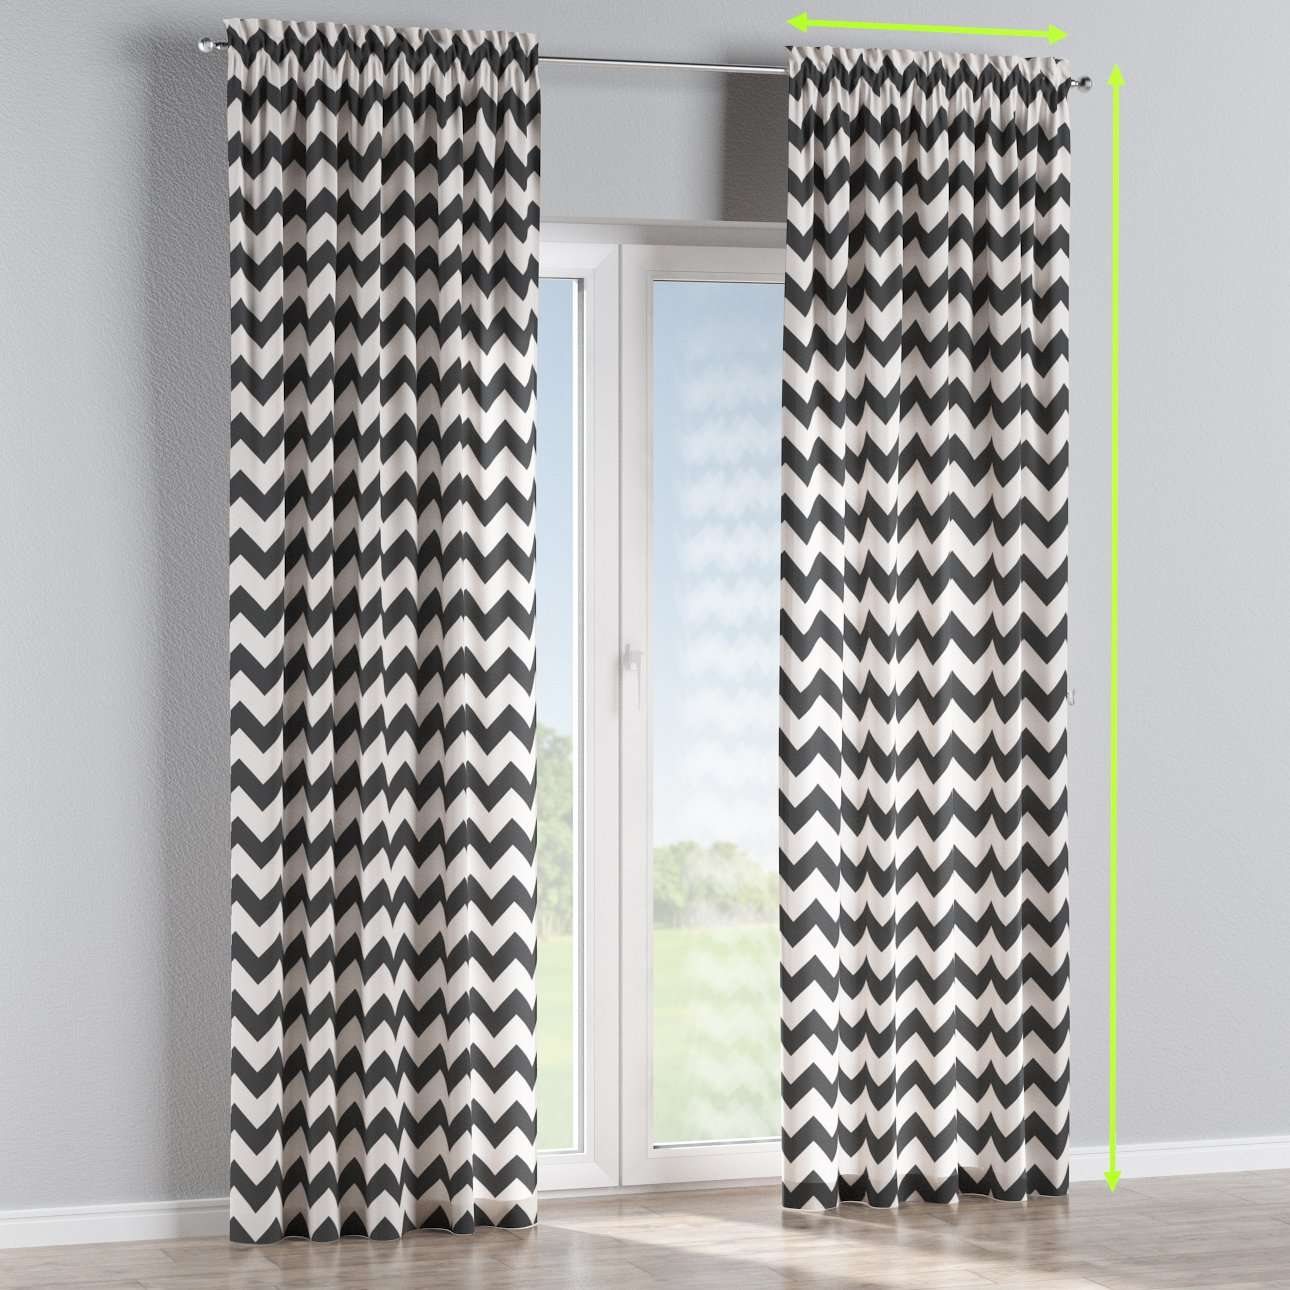 Slot and frill lined curtains in collection Comic Book & Geo Prints, fabric: 135-02